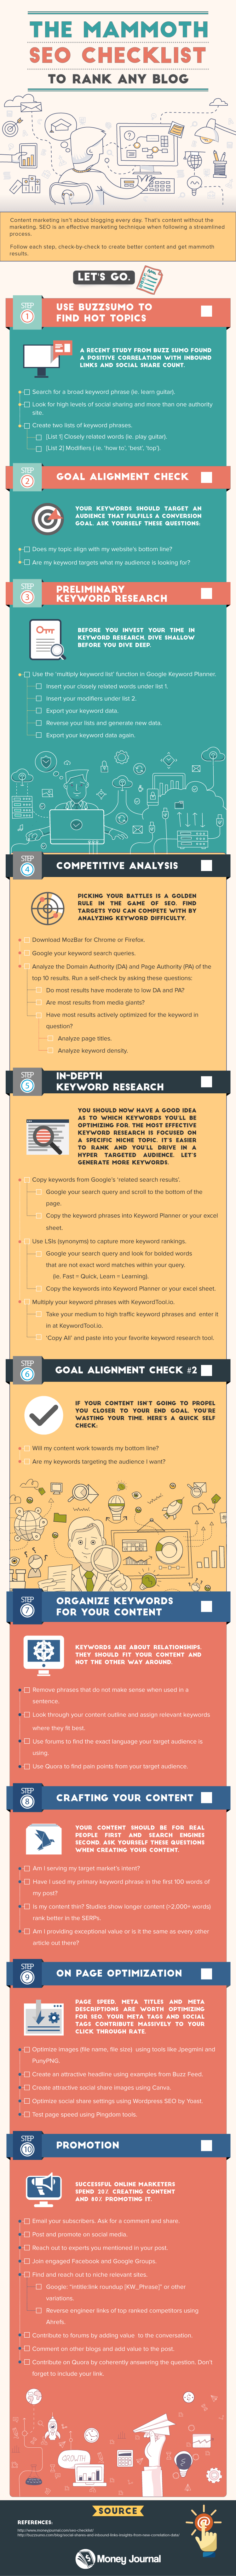 Local SEO Checklist Infographic